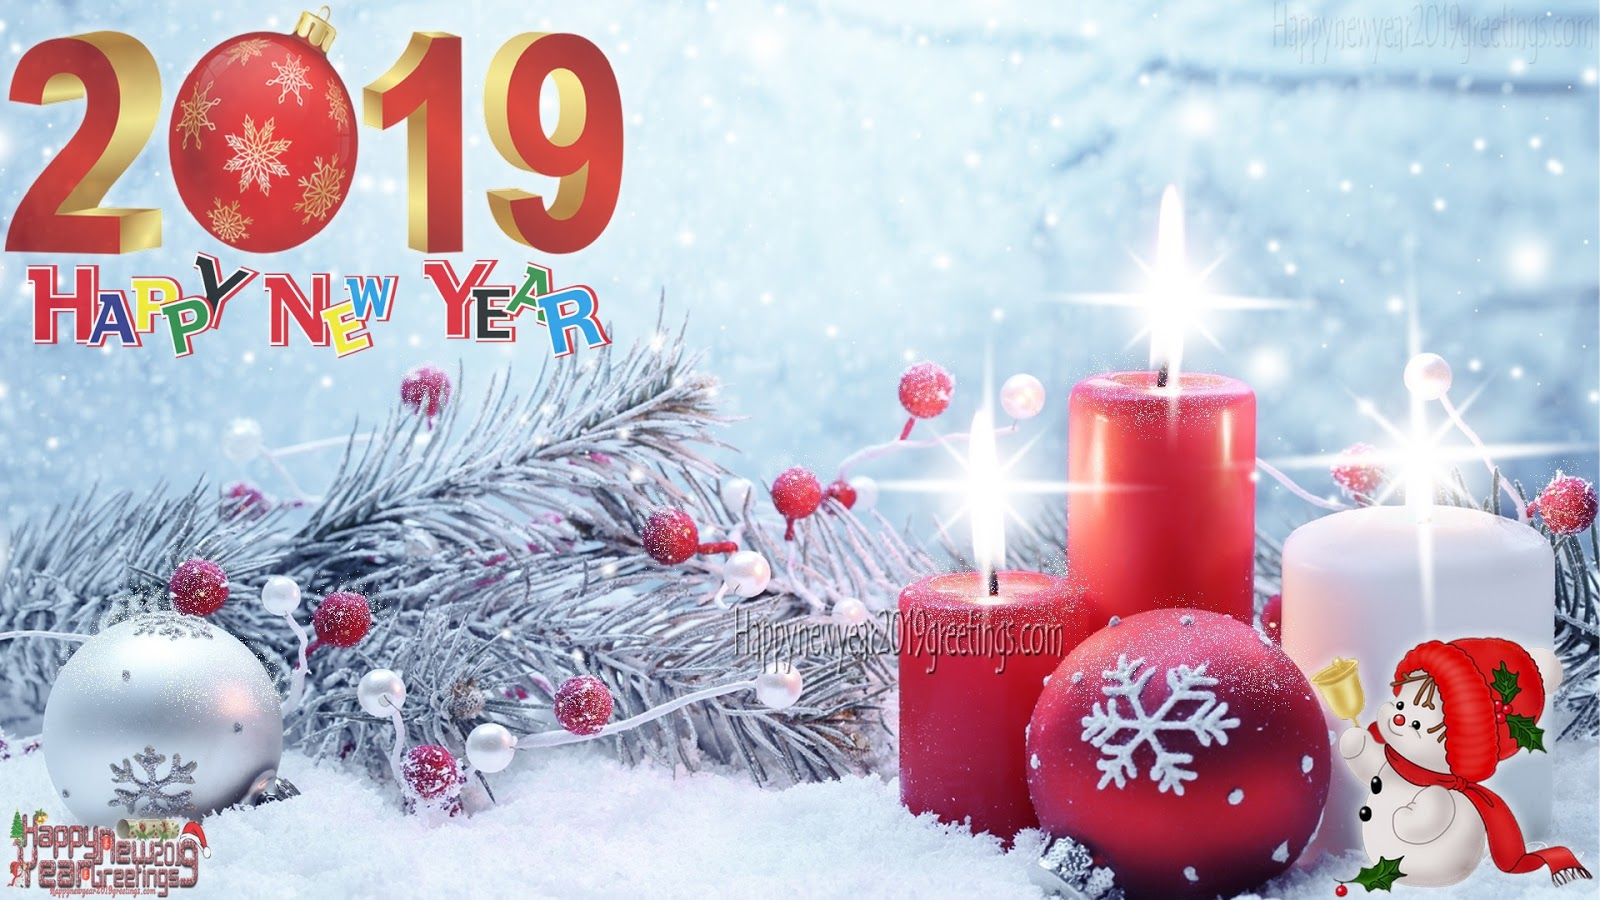 Happy New Year 2019 Wishes Wallpapers Download New Year 2019